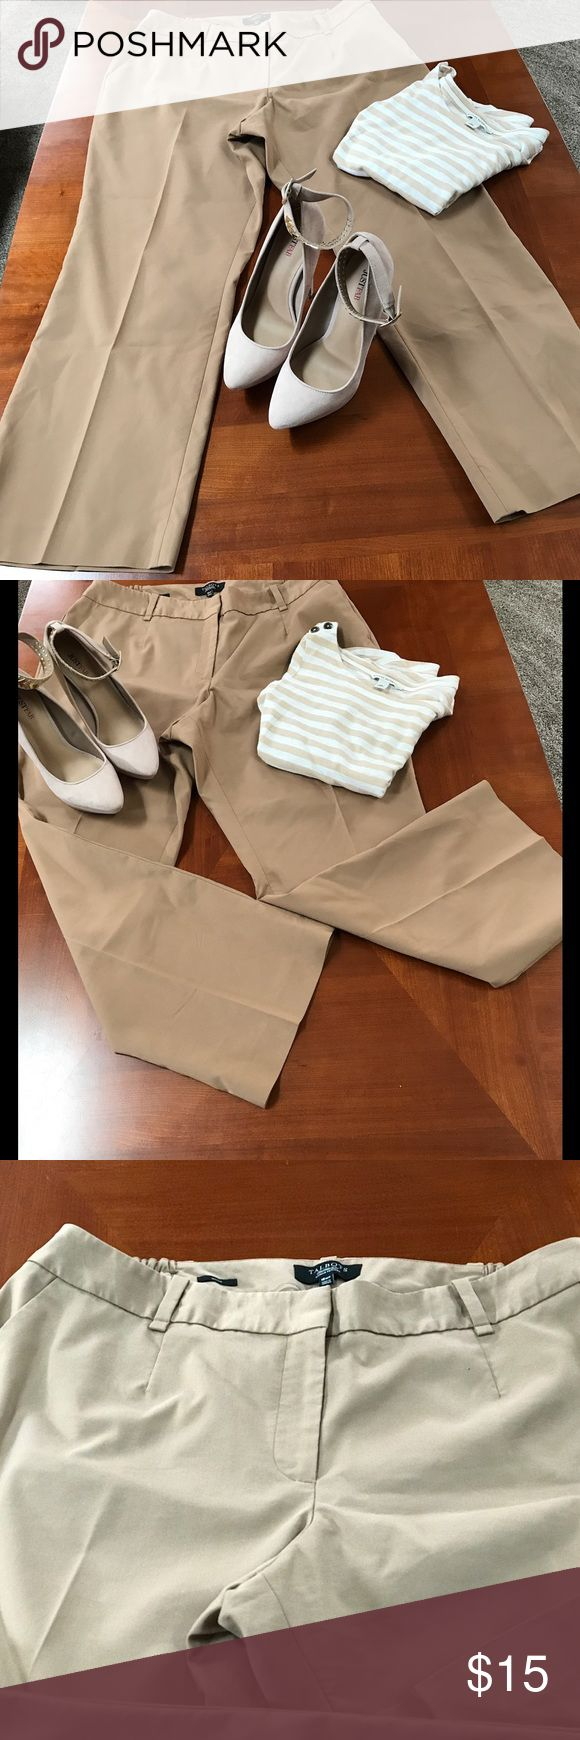 """Talbots Women's Petite Slacks Light brown cotton, polyester, and spandex petite 18W (Heritage) women's slacks.   Elastic on sides for extra comfort. Zipper front with button closure.  Pre-owned in vey good condition. 2 button pockets on back and 2 front pockets. 28 1/2"""" inseam, 10 1/2"""" across leg from knee to hem. Talbots Pants Trousers"""